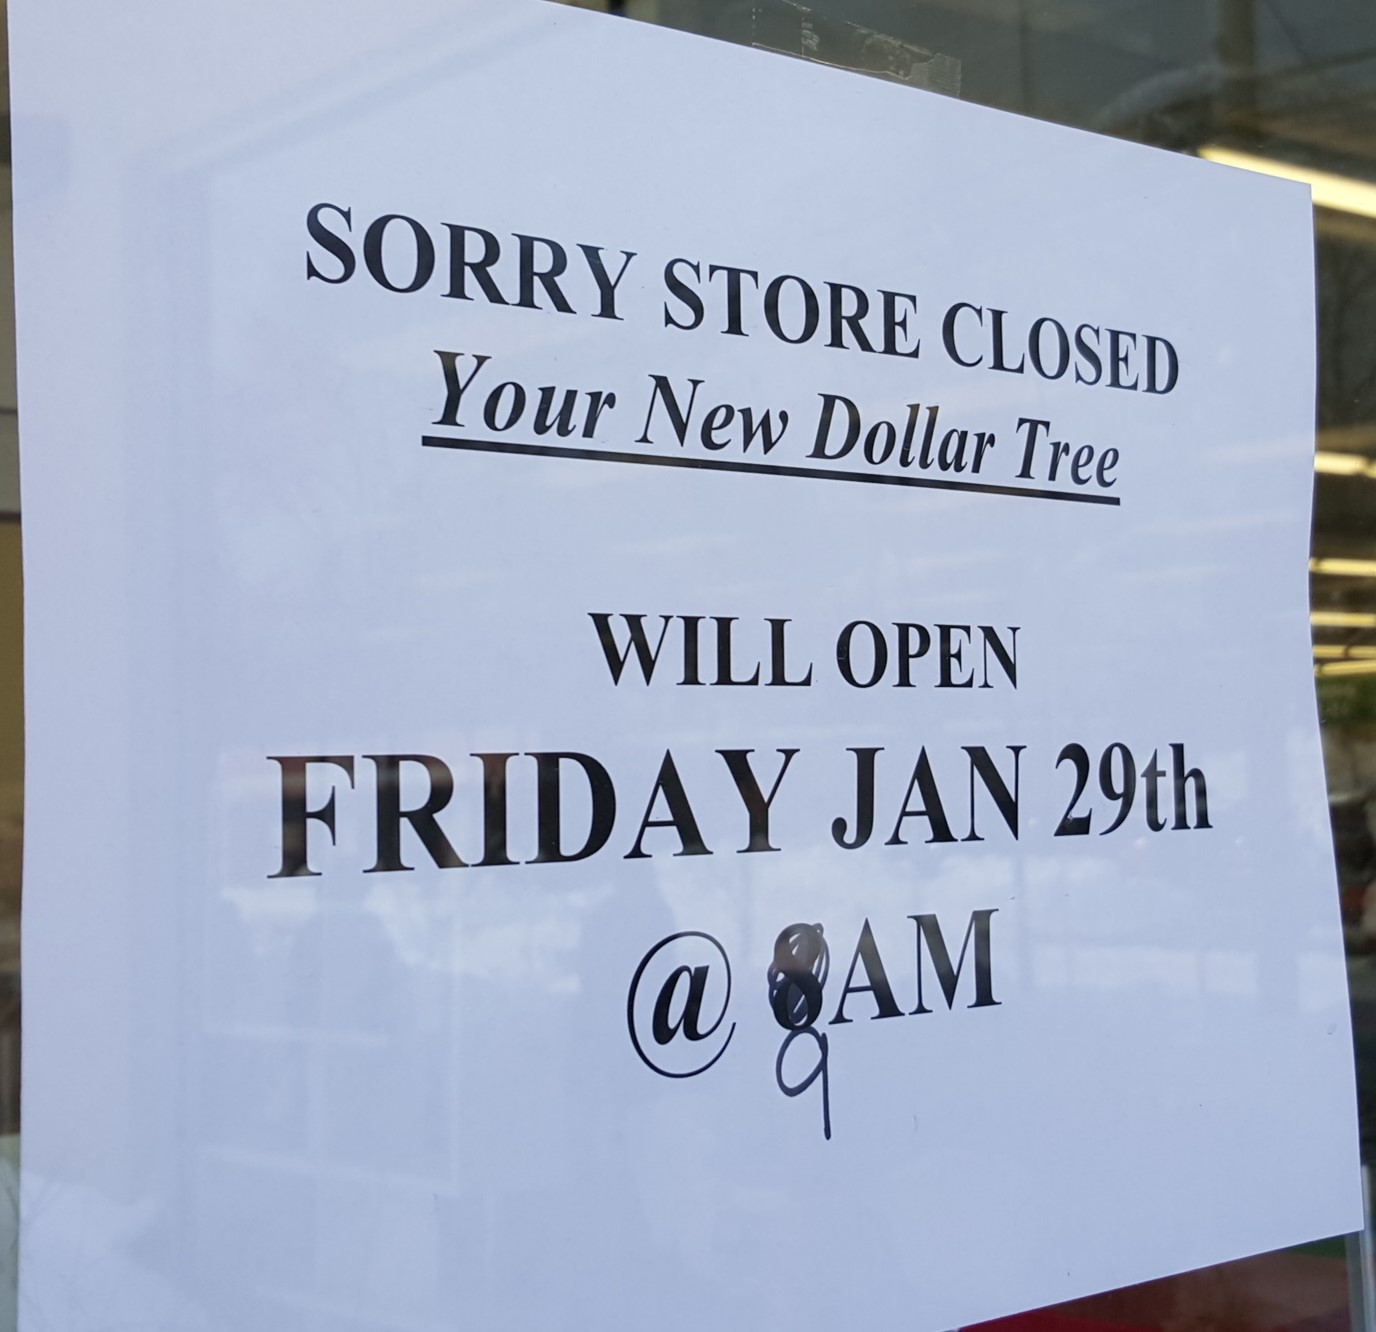 Maplewoodian com: DOLLAR TREE TO REPLACE DEALS ON FRIDAY